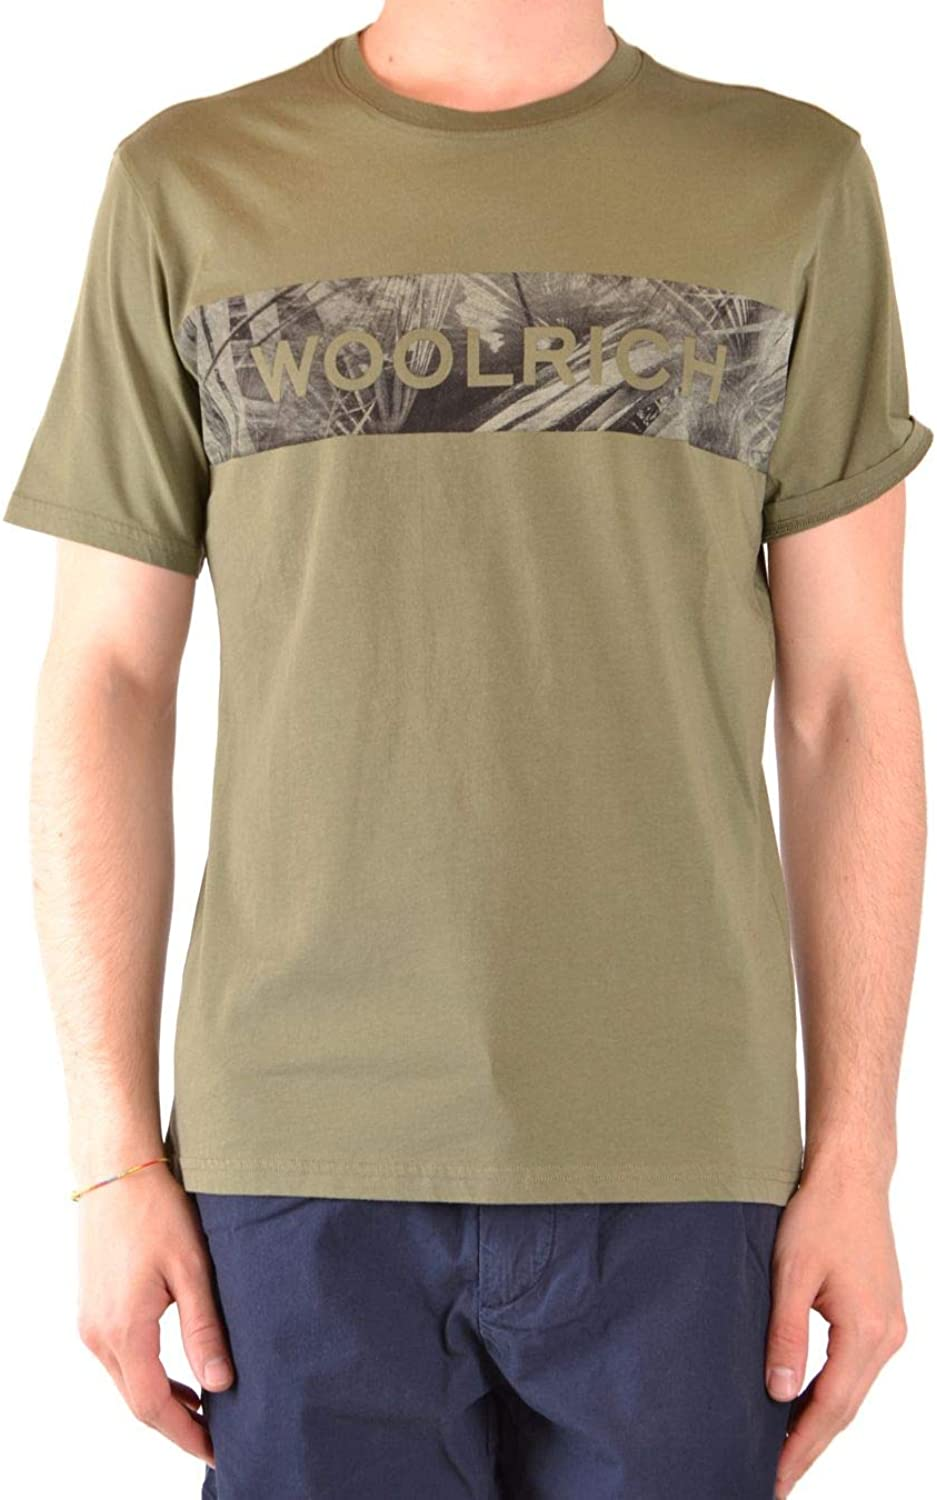 Woolrich Men's WOTEE1154UT14866373 Green Cotton TShirt